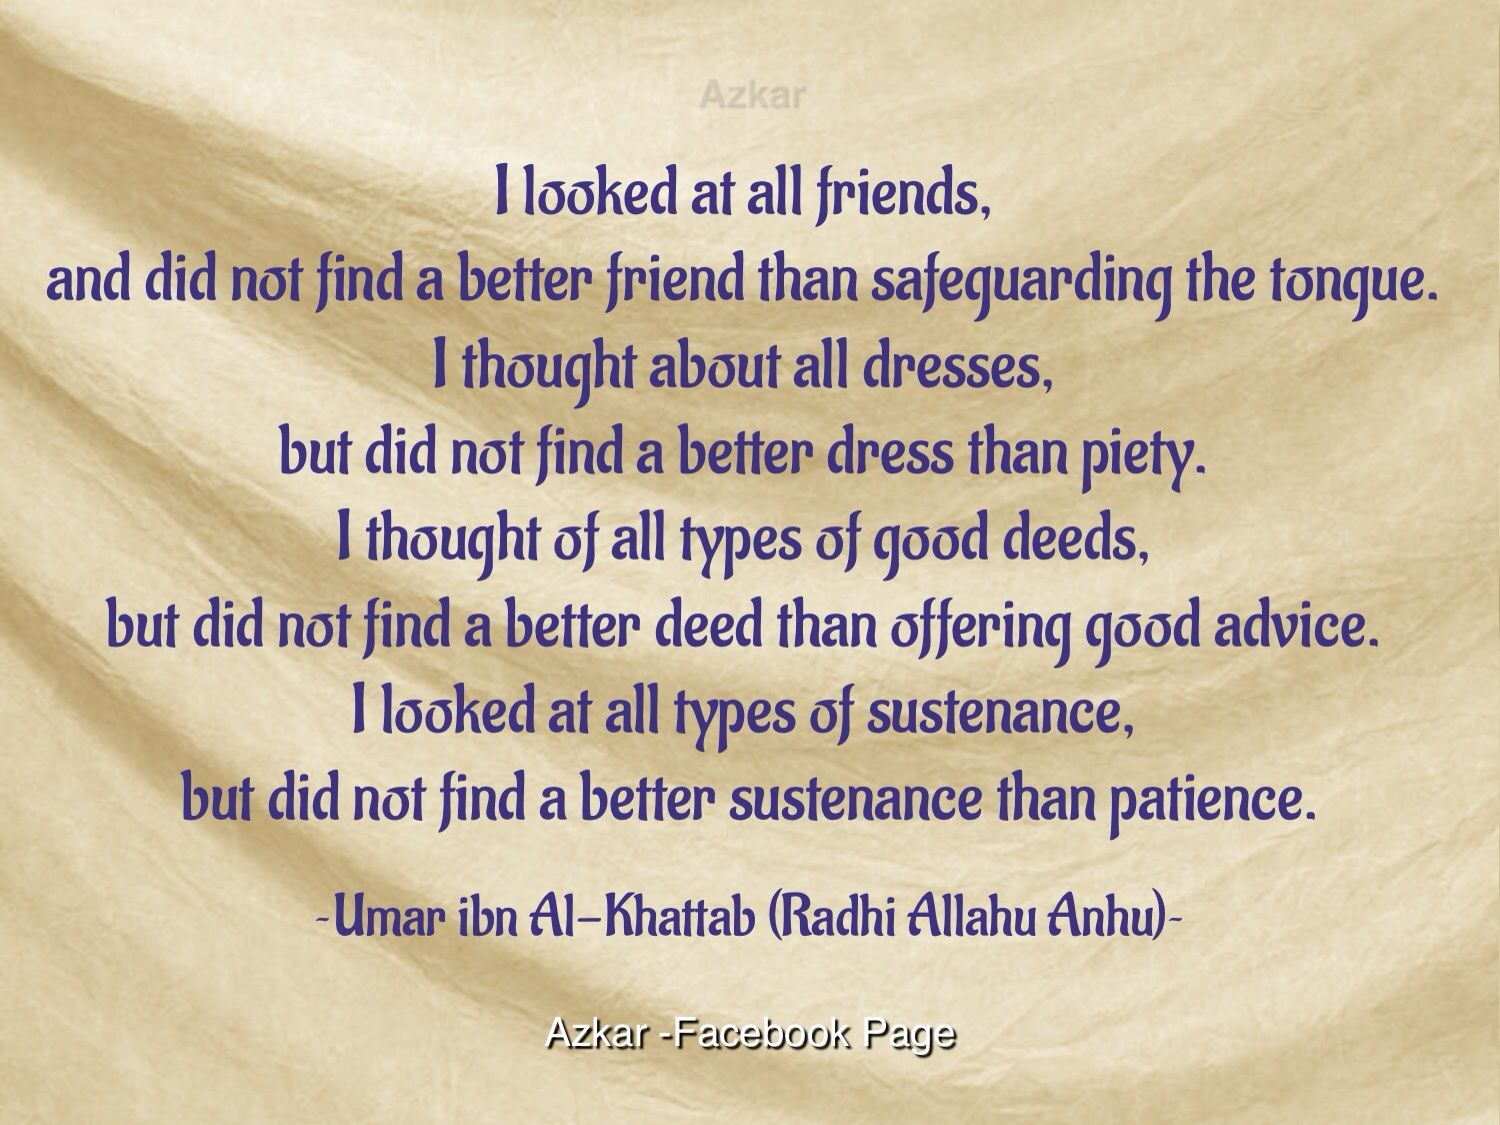 Islamic Quotes About Friendship I Looked At All Friends And Did Not Find A Better Friend Than